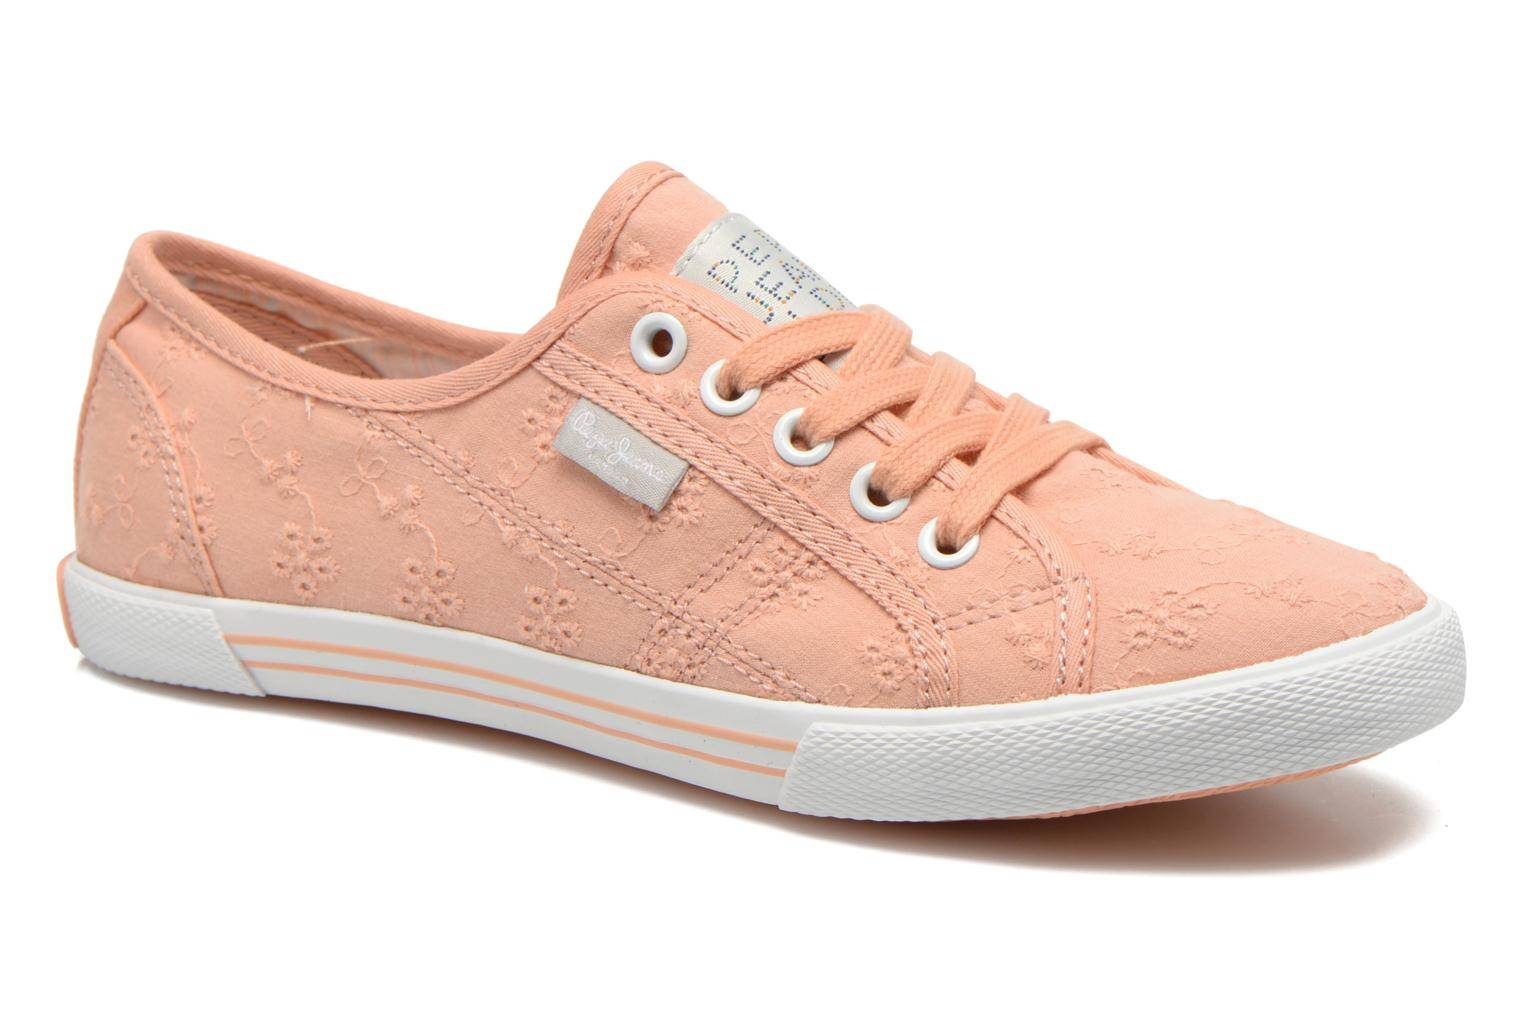 Pepe jeans - Aberlady Anglaise by  - Tennarit Naisille  / Oranssi